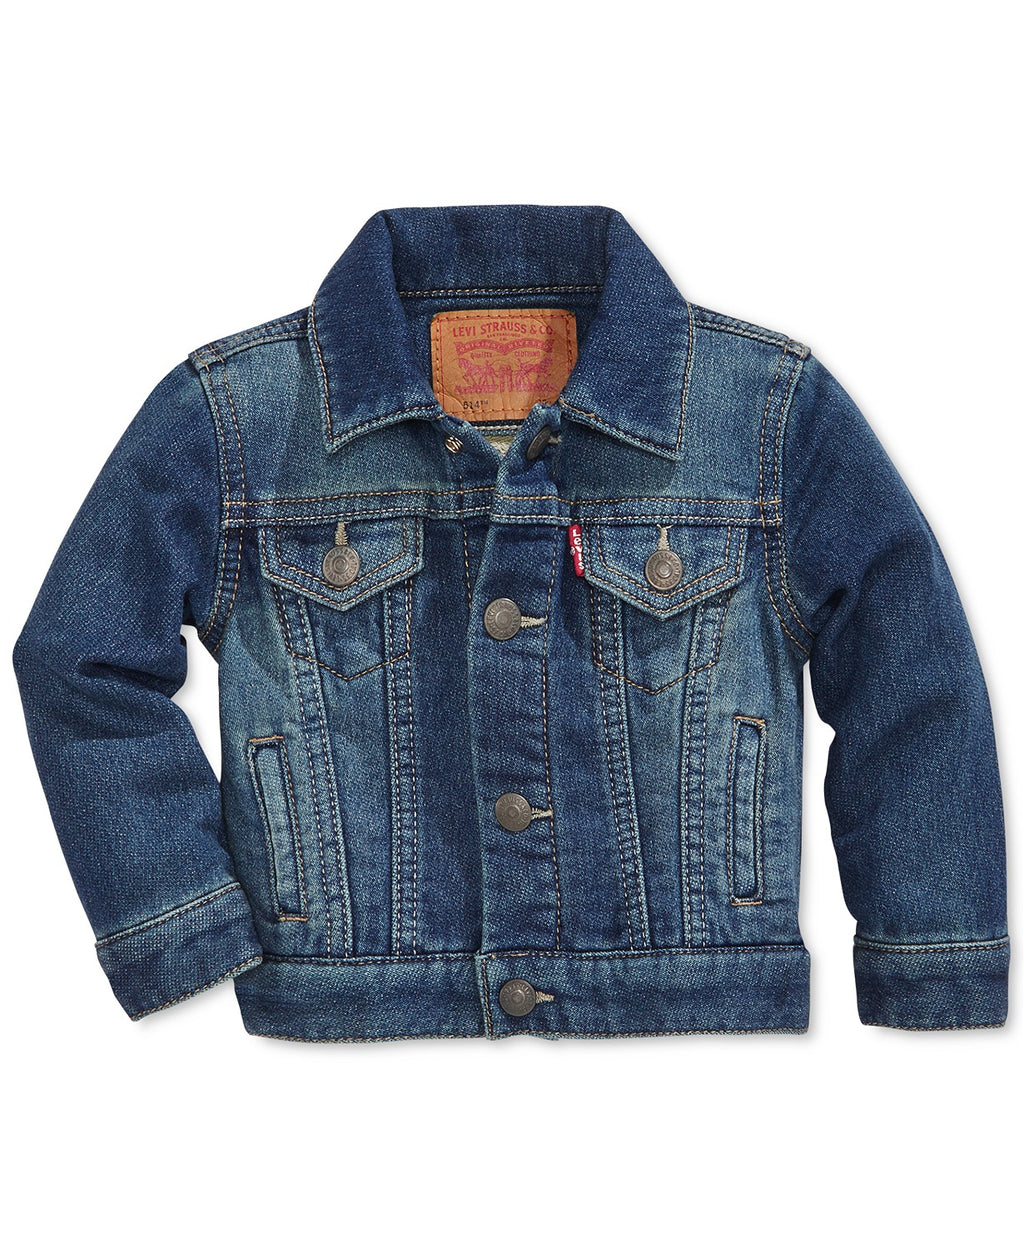 Baby Levi's Denim Trucker Jacket - gilt+gossamer